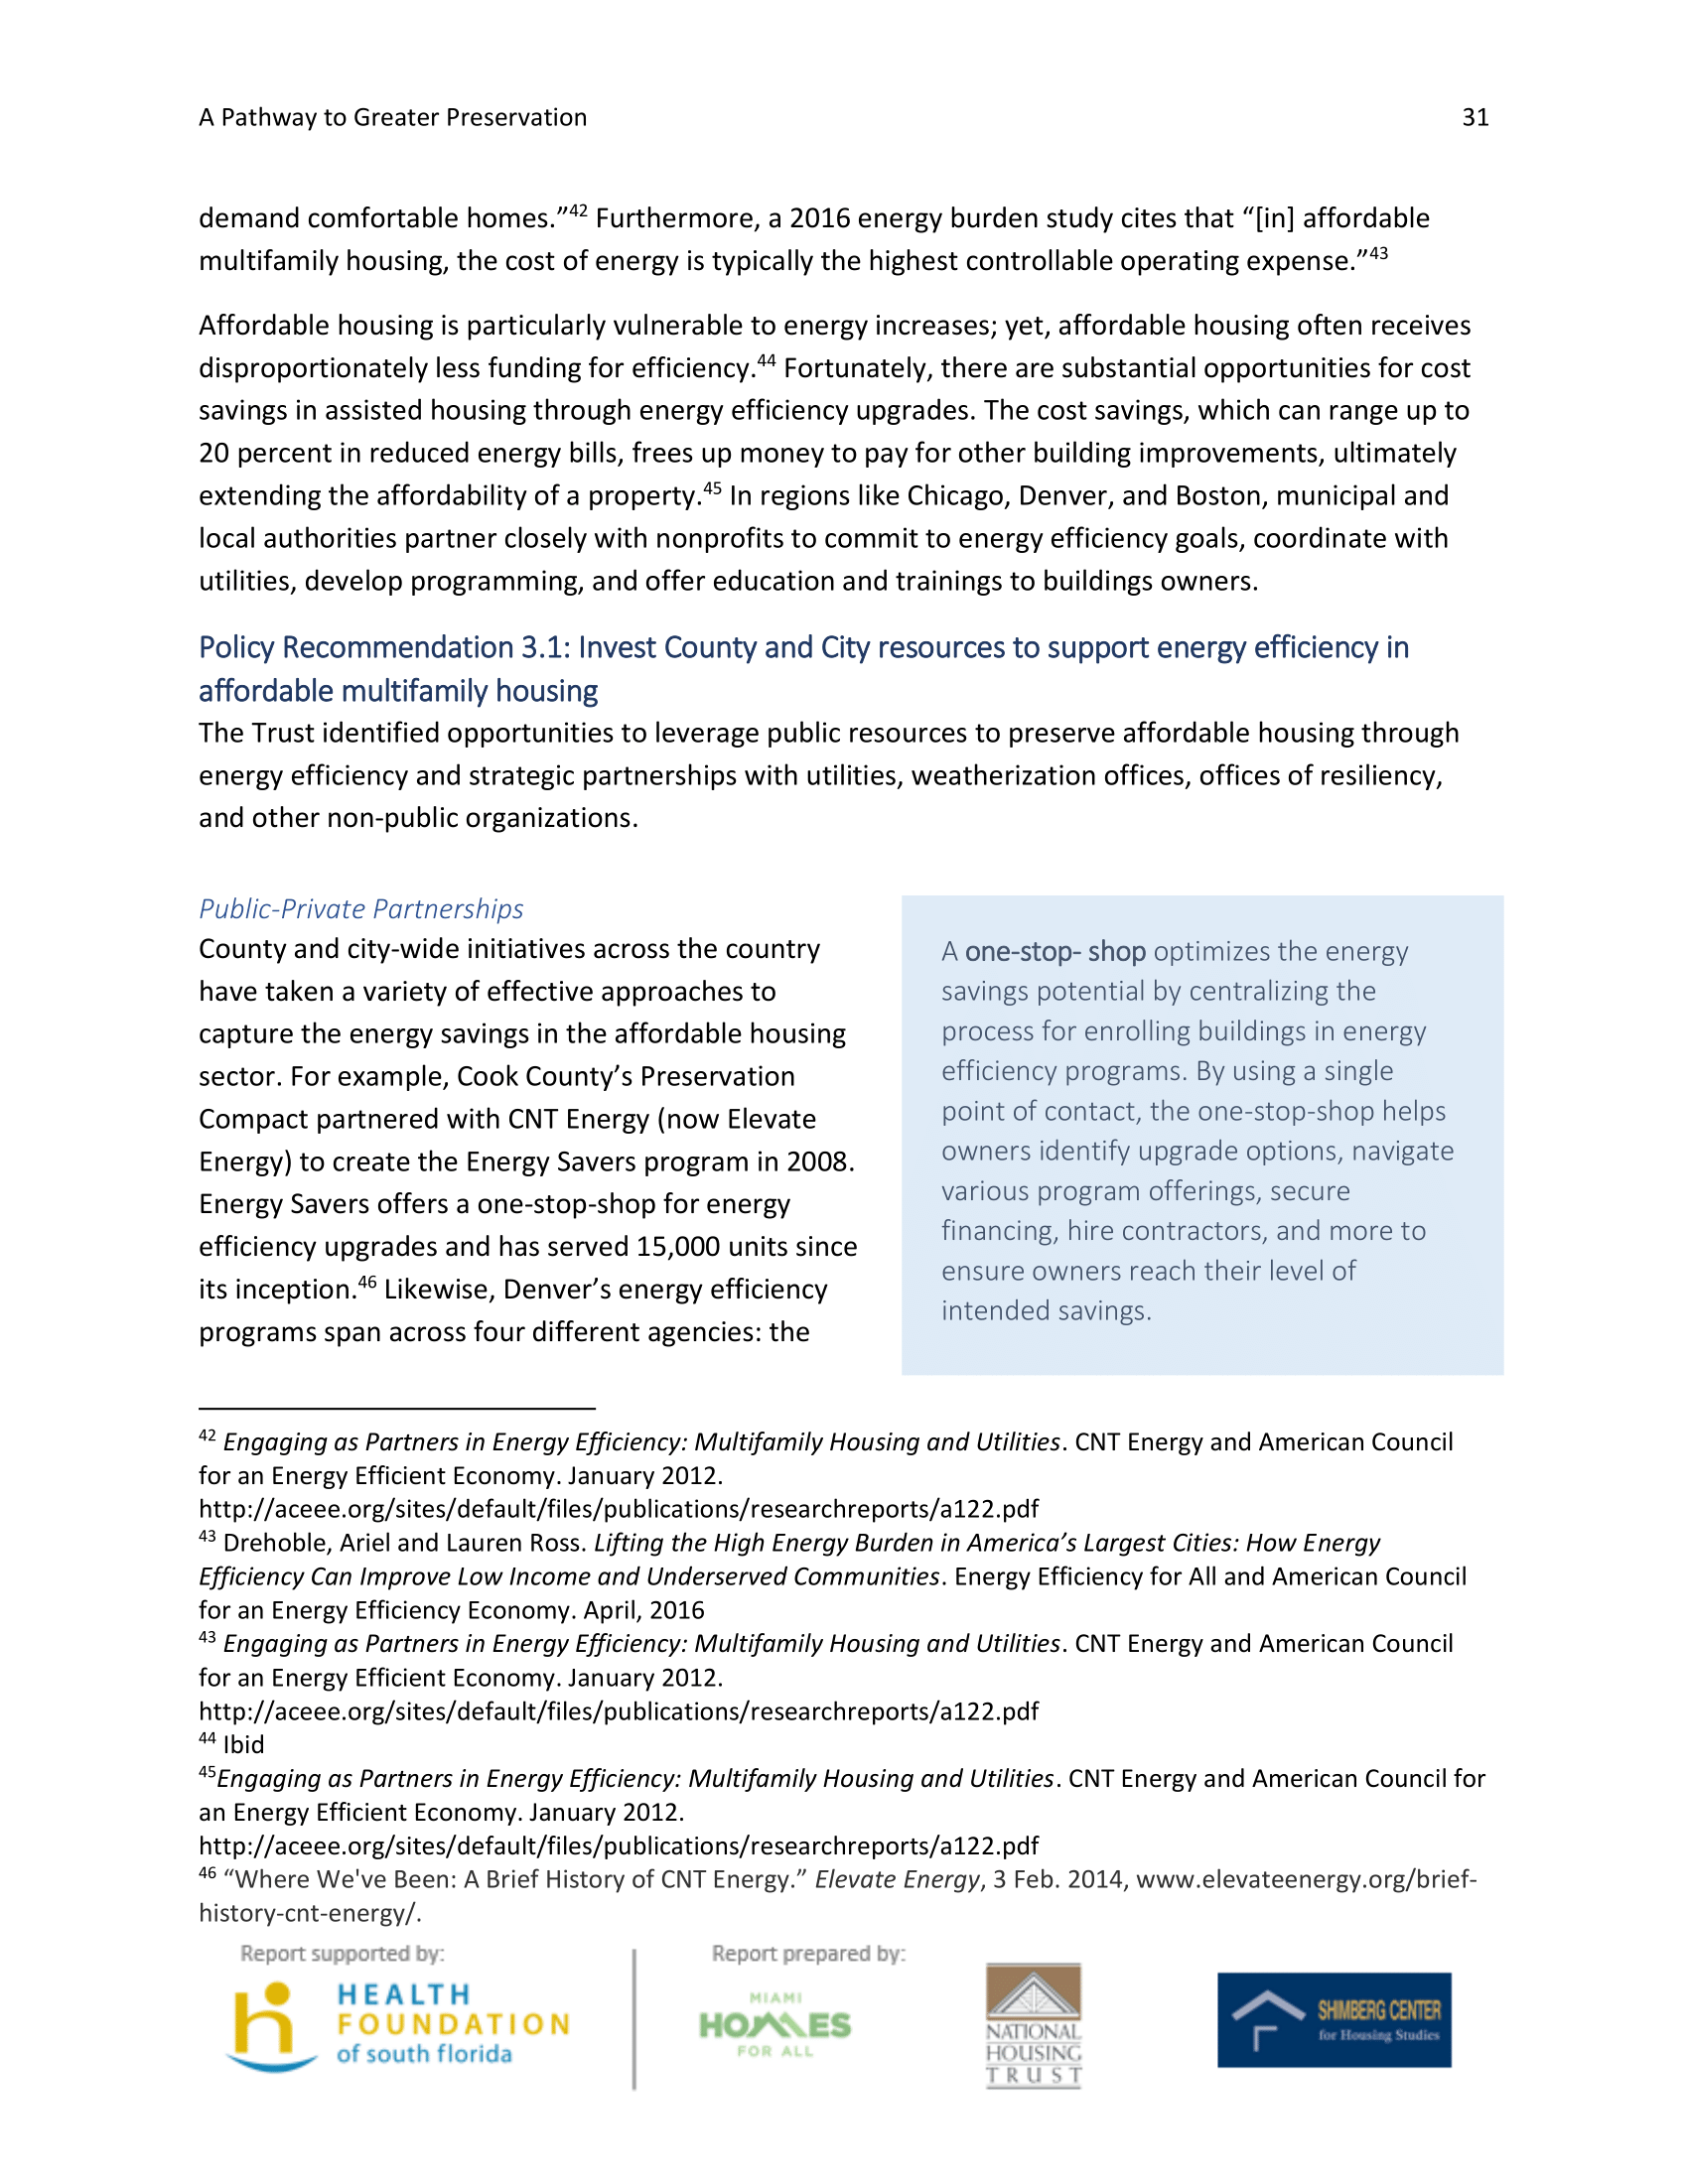 A Pathway to Greater Preservation - February 2018-39.png